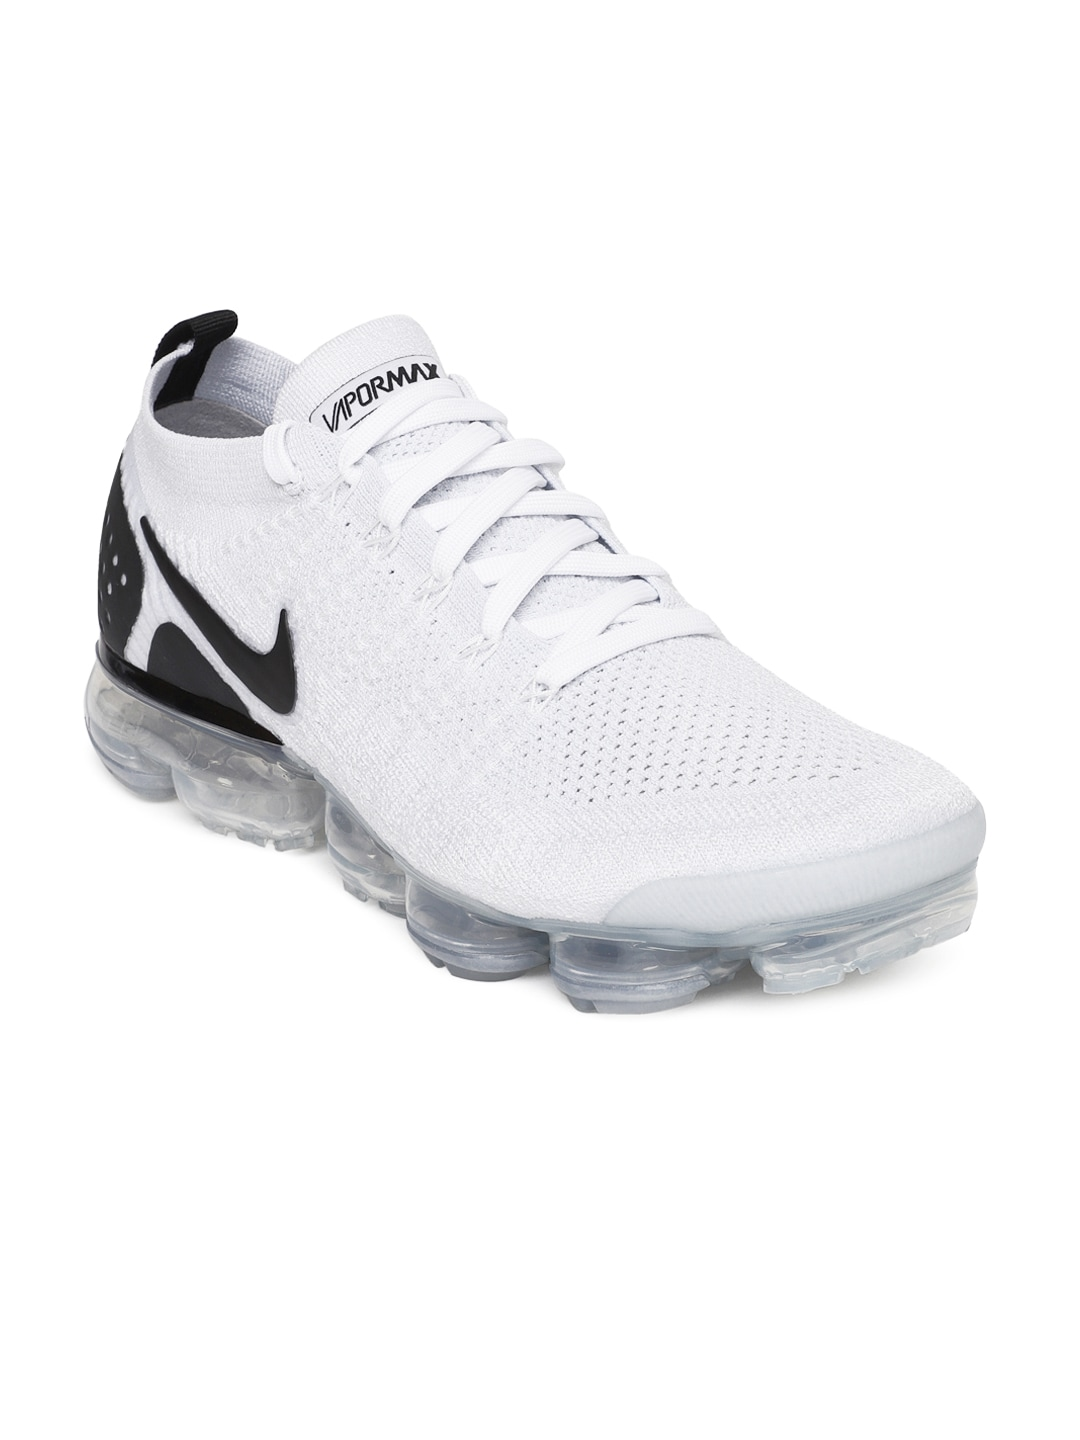 fdba37e90c7 f8a00f11-3e71-4663-856b-2691875a7aa31545828488232-Nike-Men-White-Air-VaporMax-Flyknit-2-Running- Shoes-86615458-1.jpg